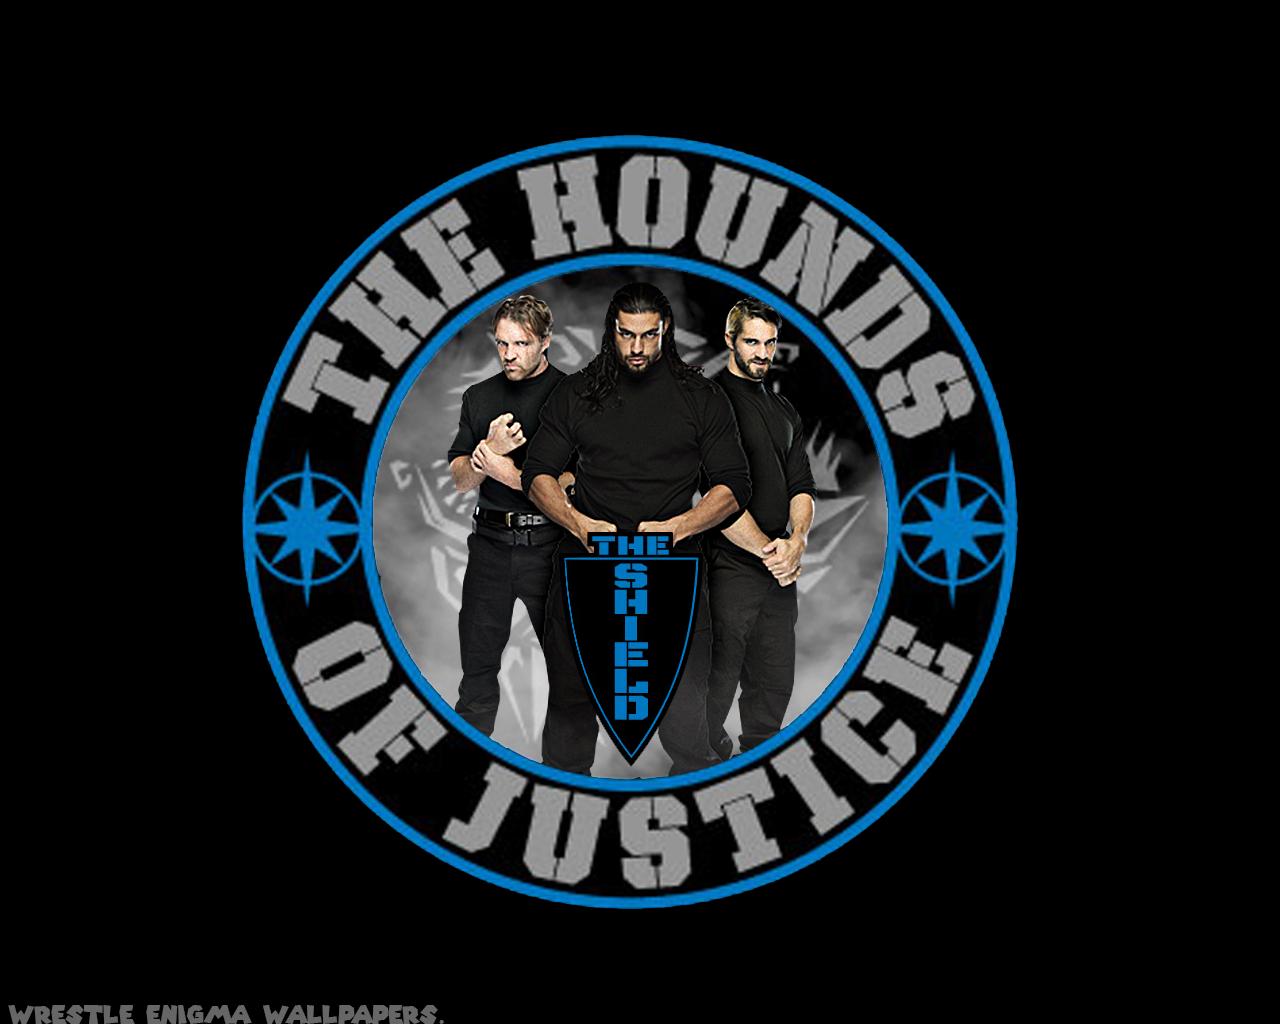 The Shield Hounds Of Justice Wwe Wallpaper Wwe Roman Reigns Wwe Roman Reigns